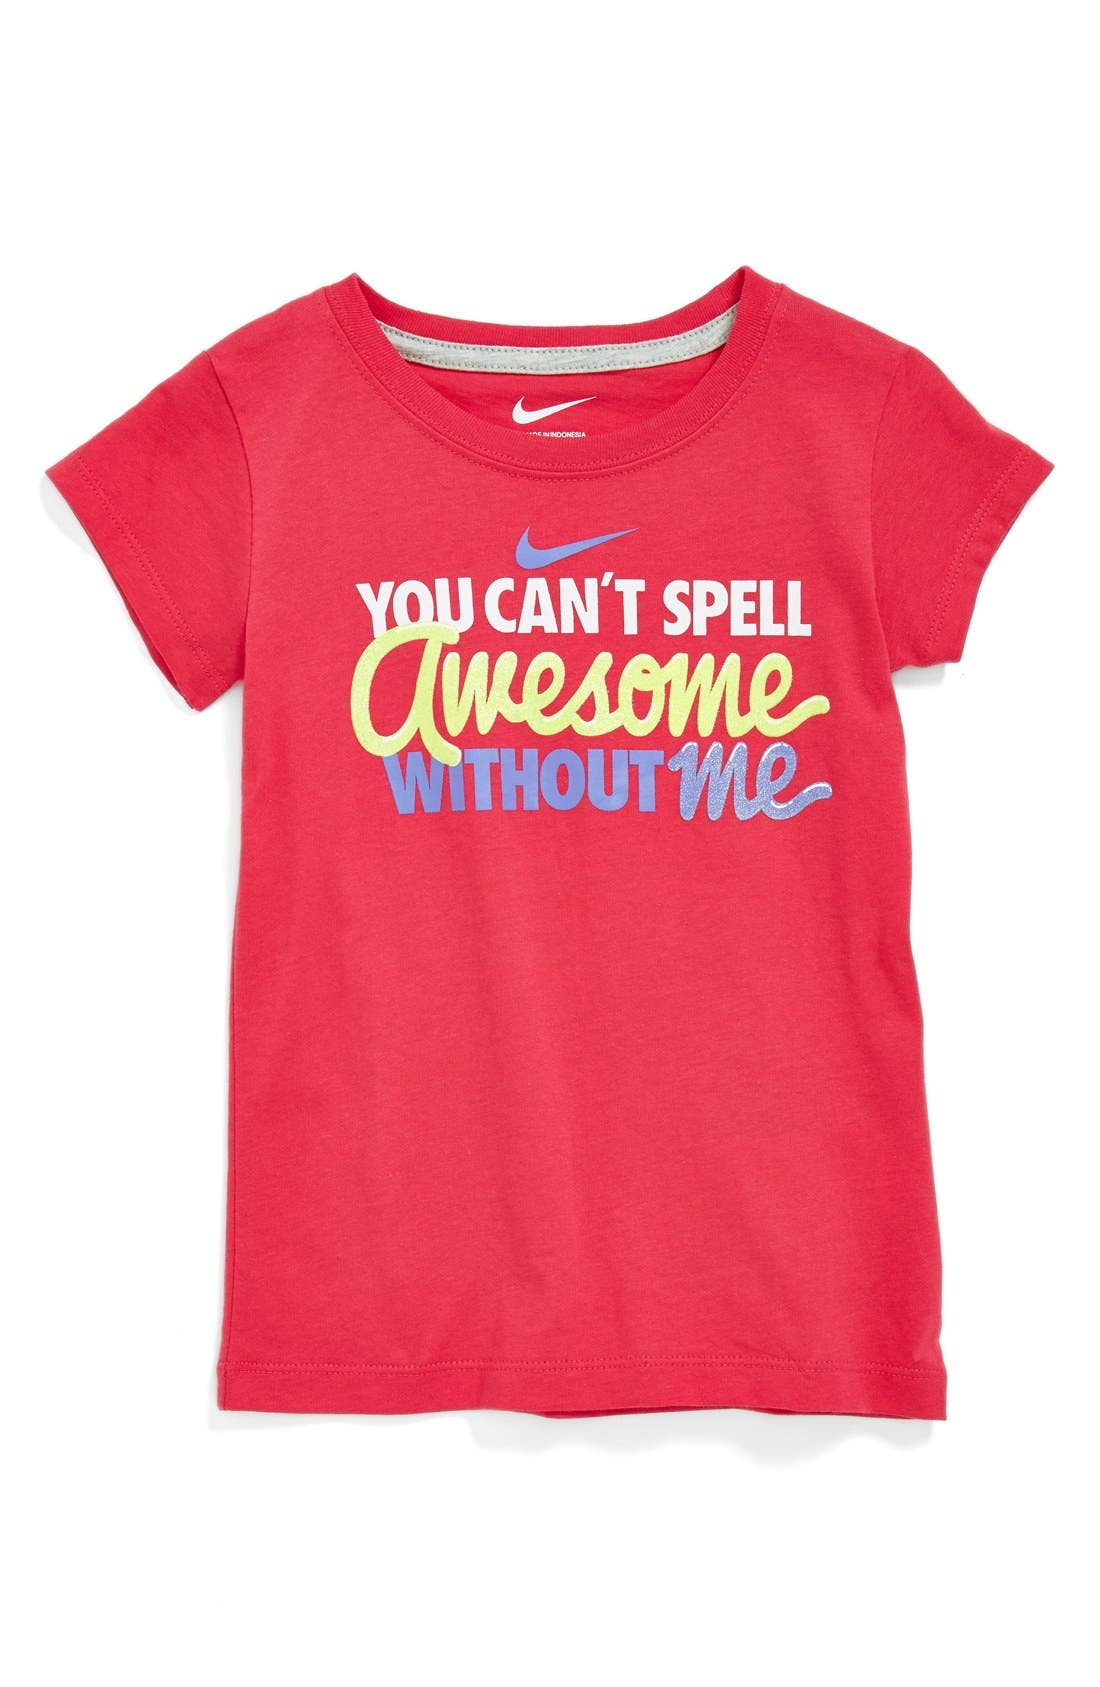 NIKE 'You Can't Spell Awesome Without Me' Tee, Main, color, 655